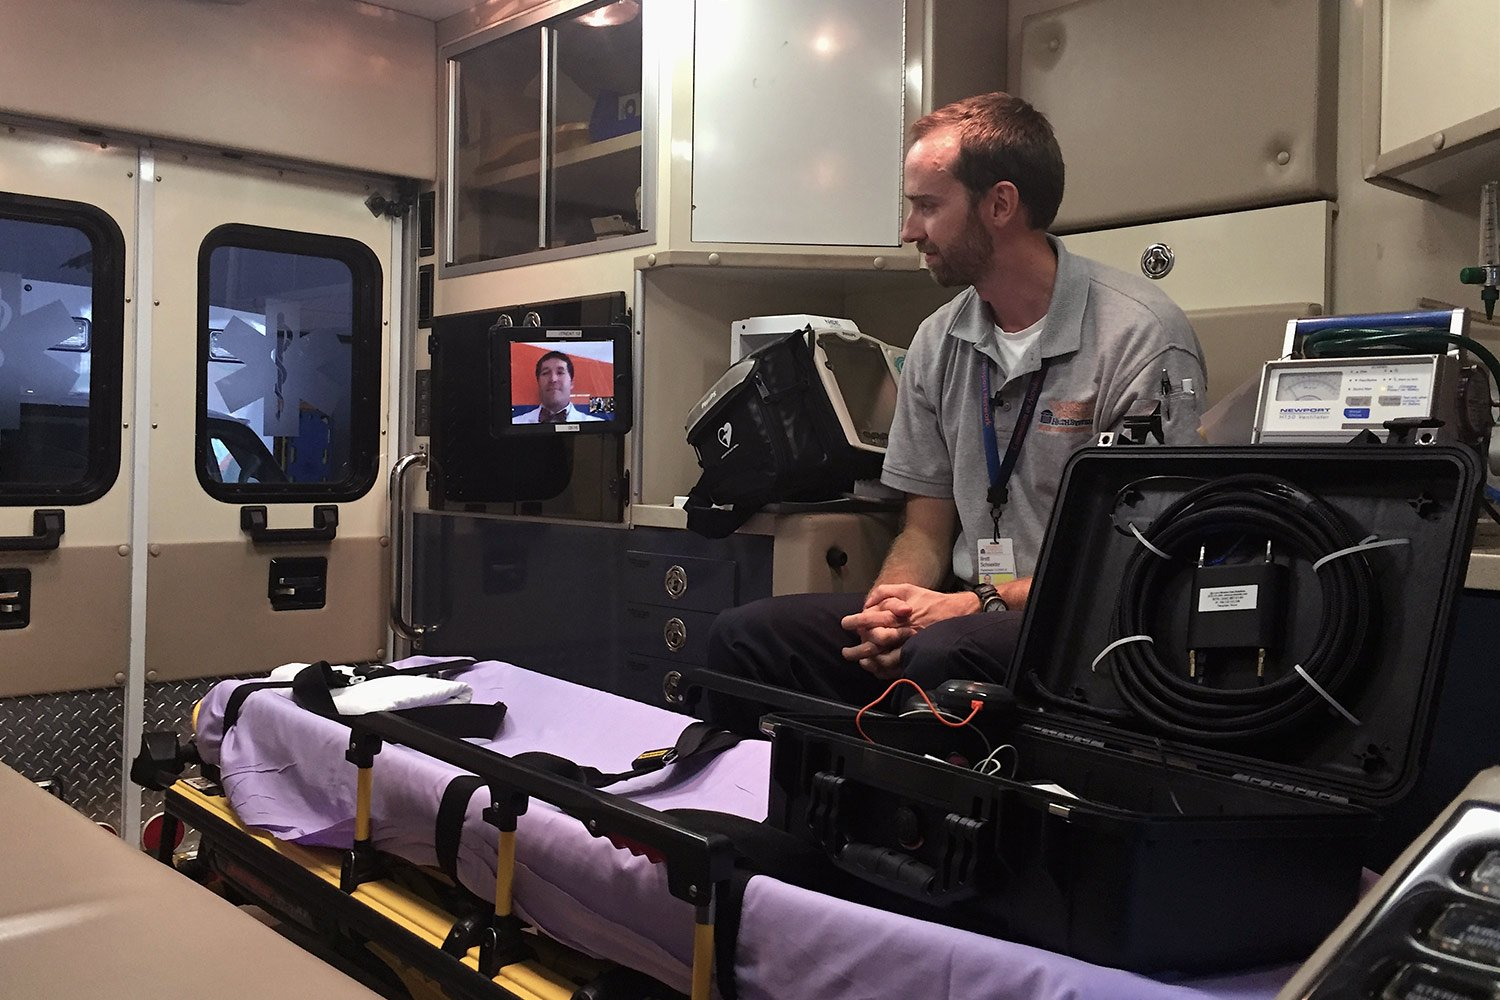 Virtual System Allows Doctors To Ride In Ambulance